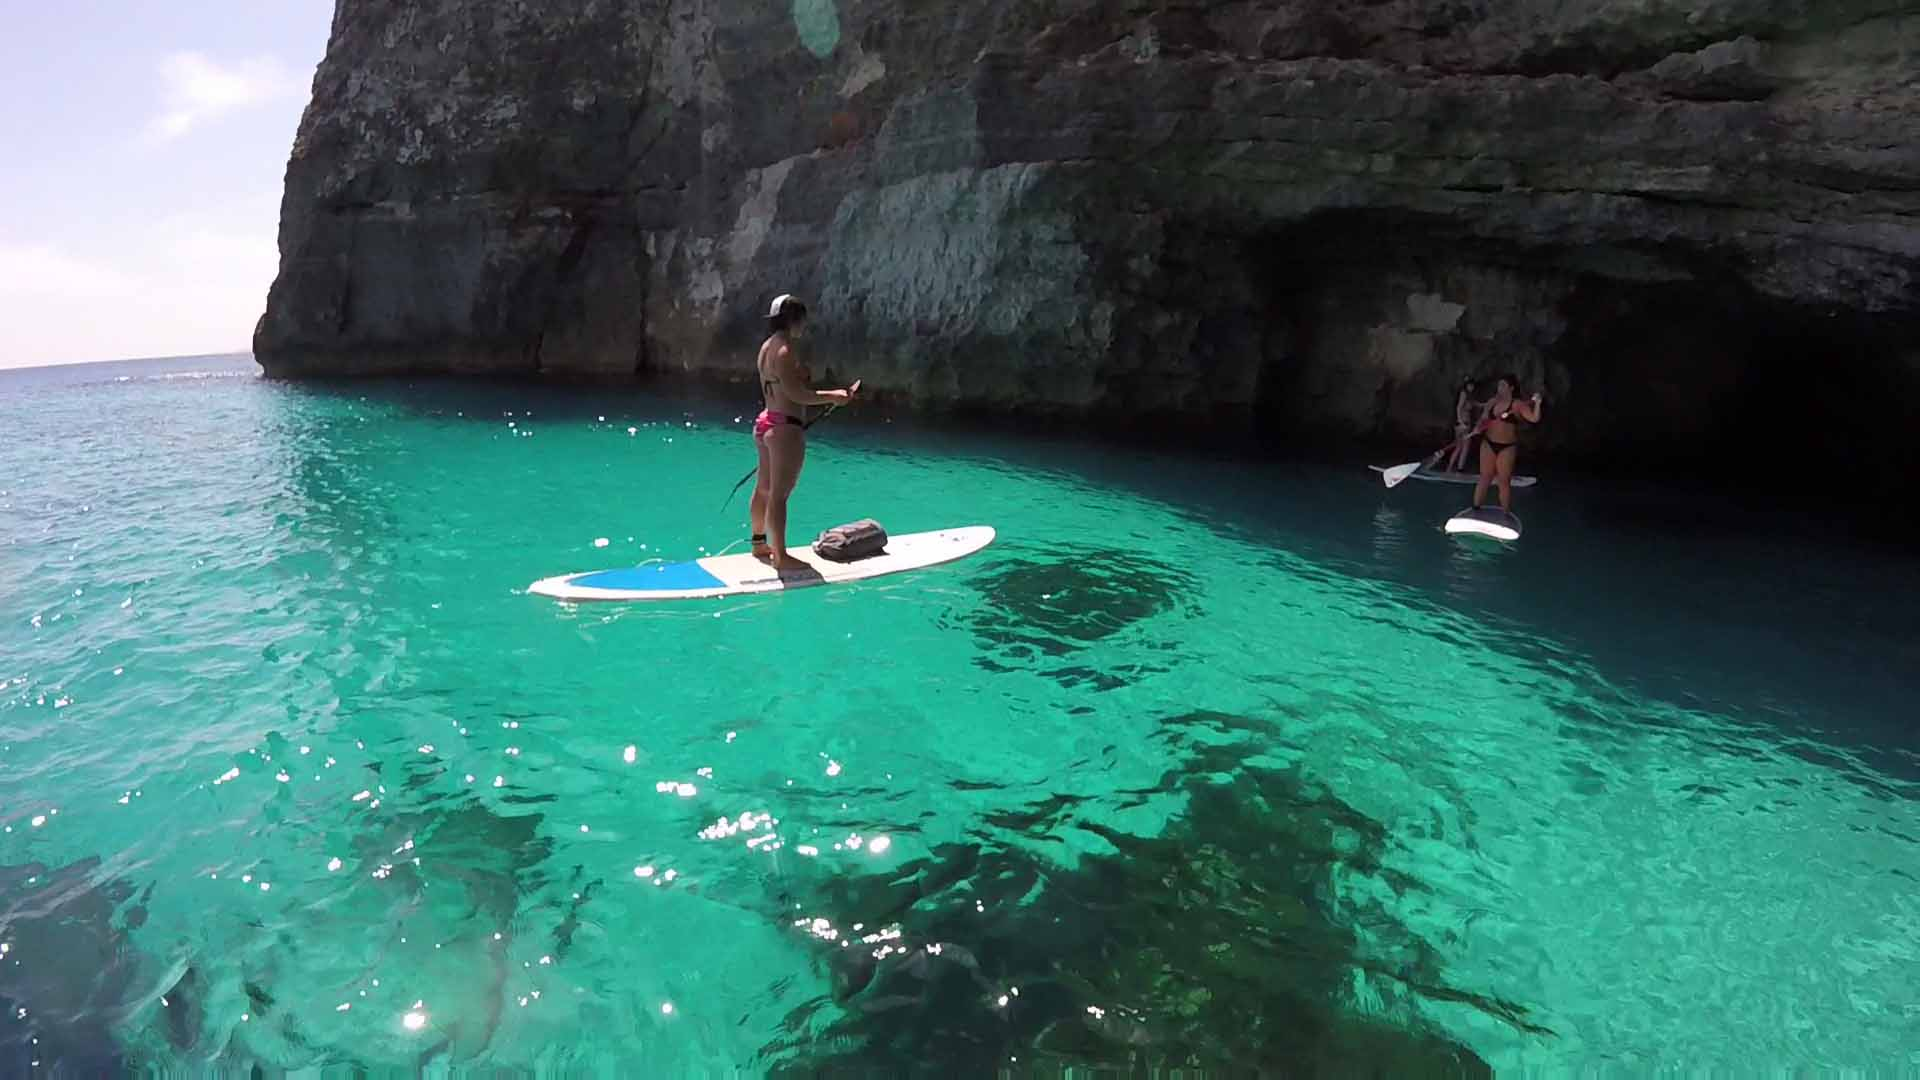 Watersports Archives Surfing Maltasurfing Malta